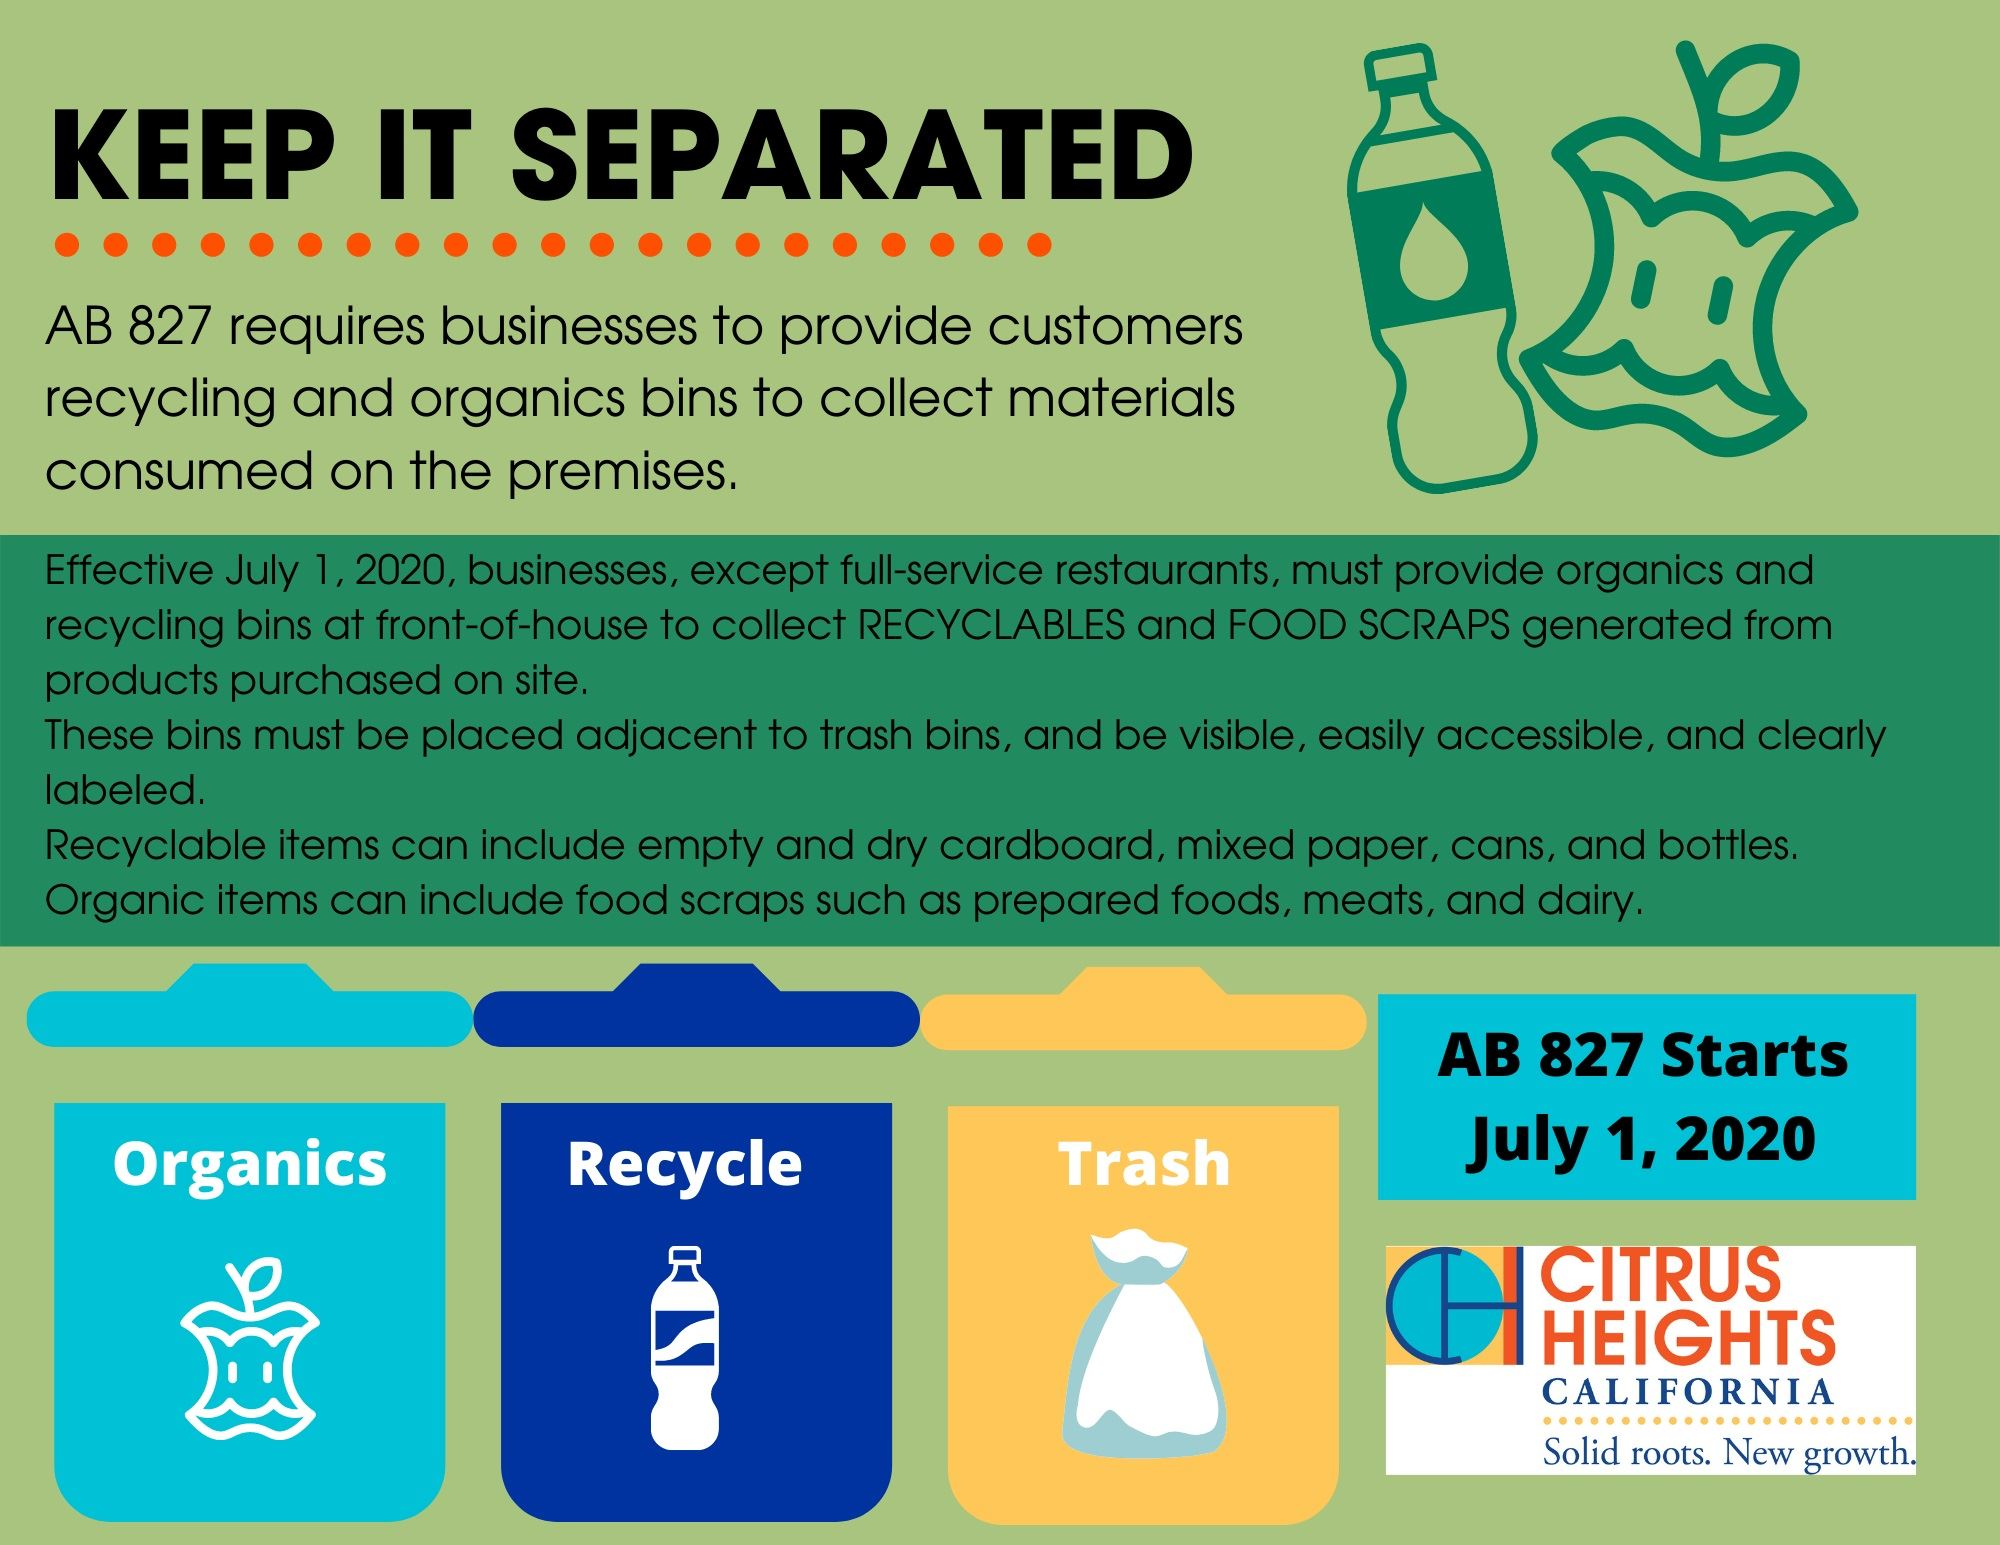 AB 827 business recycling